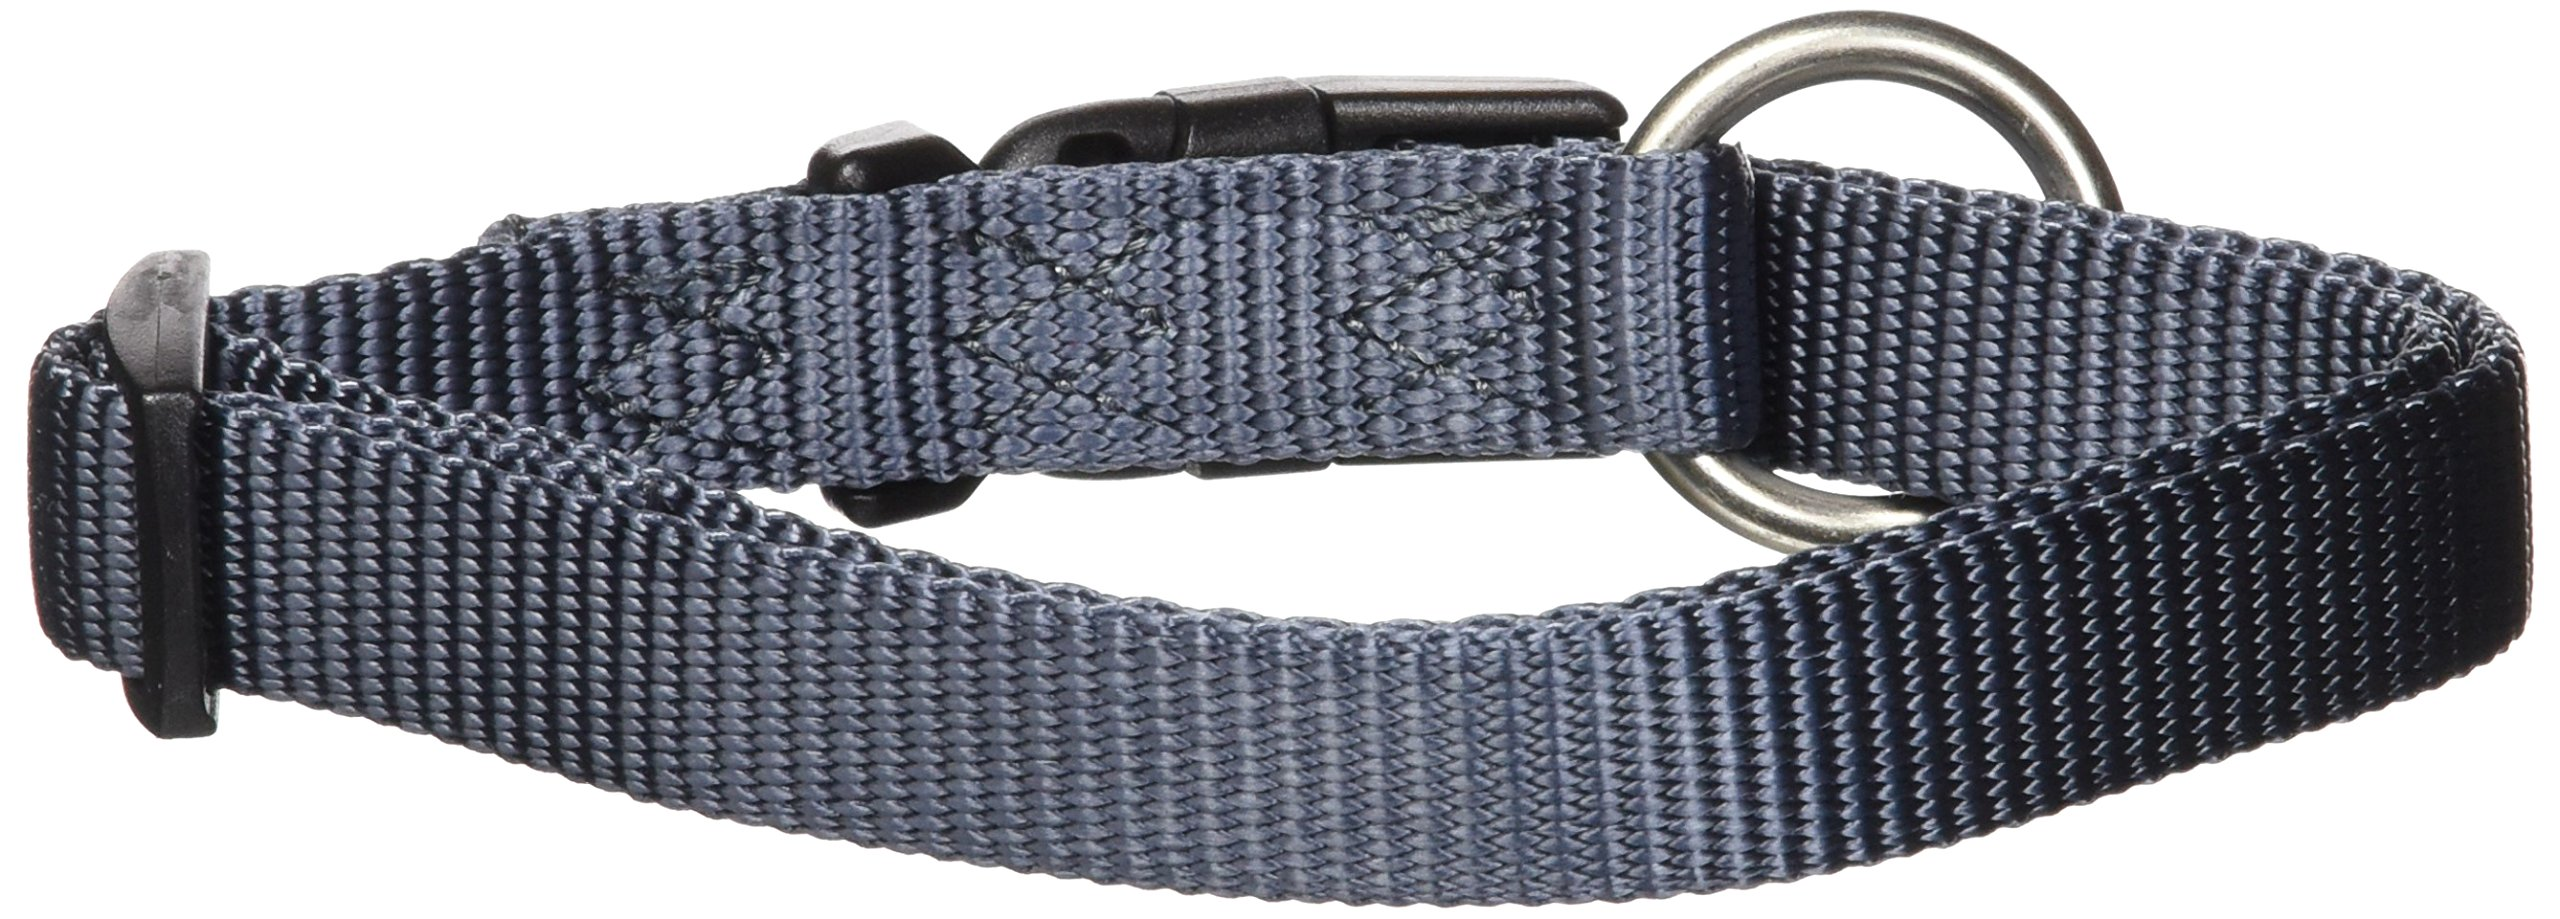 Hamilton 5/8-Inch Adjustable Dog Collar Fits 12-Inch to 18-Inch with Brushed Hardware Ring, Small, Graphite